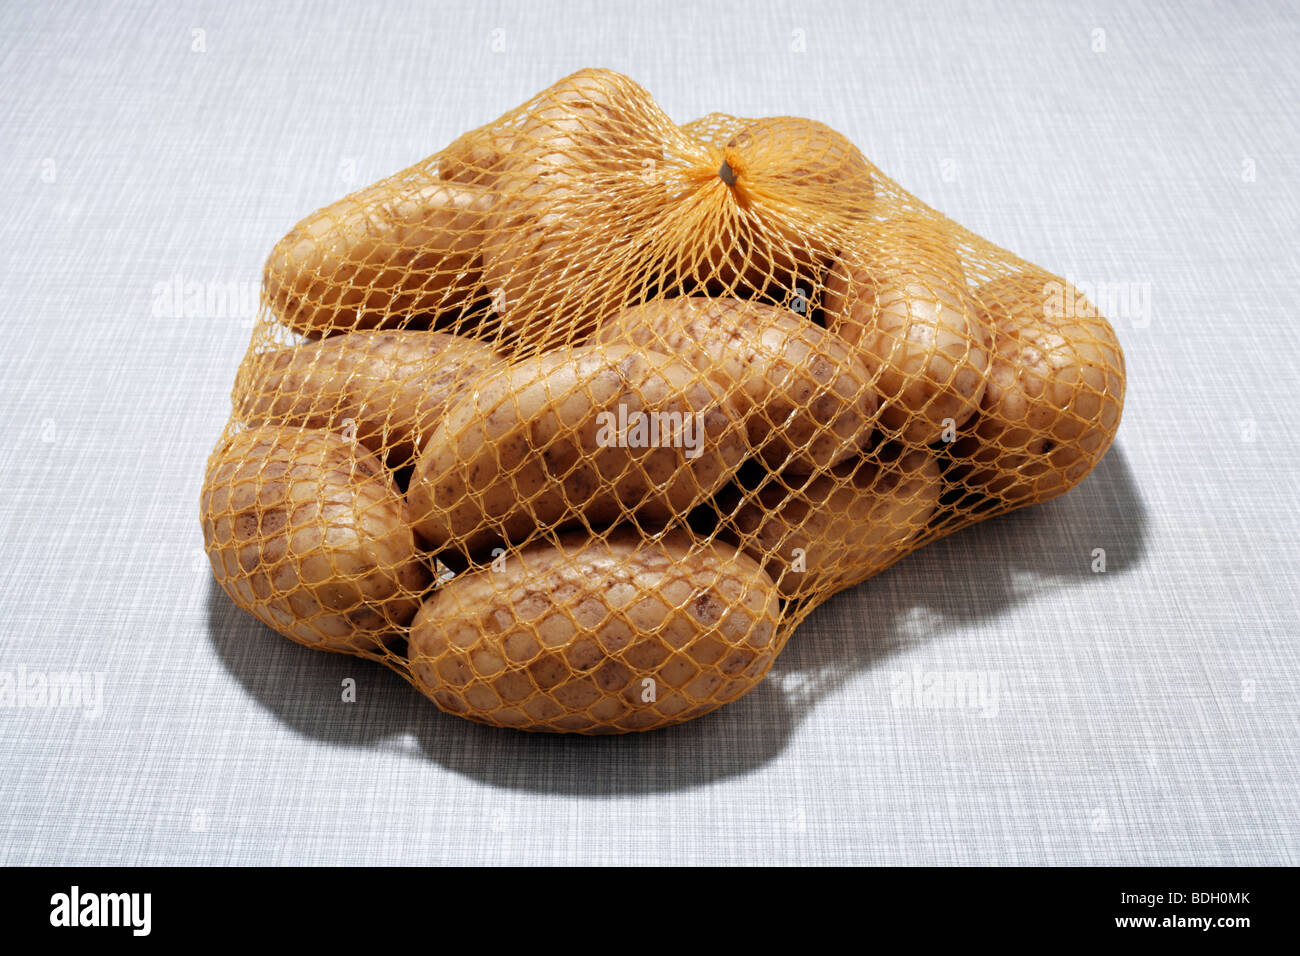 Potatoes in the net on kitchen desk top - Stock Image